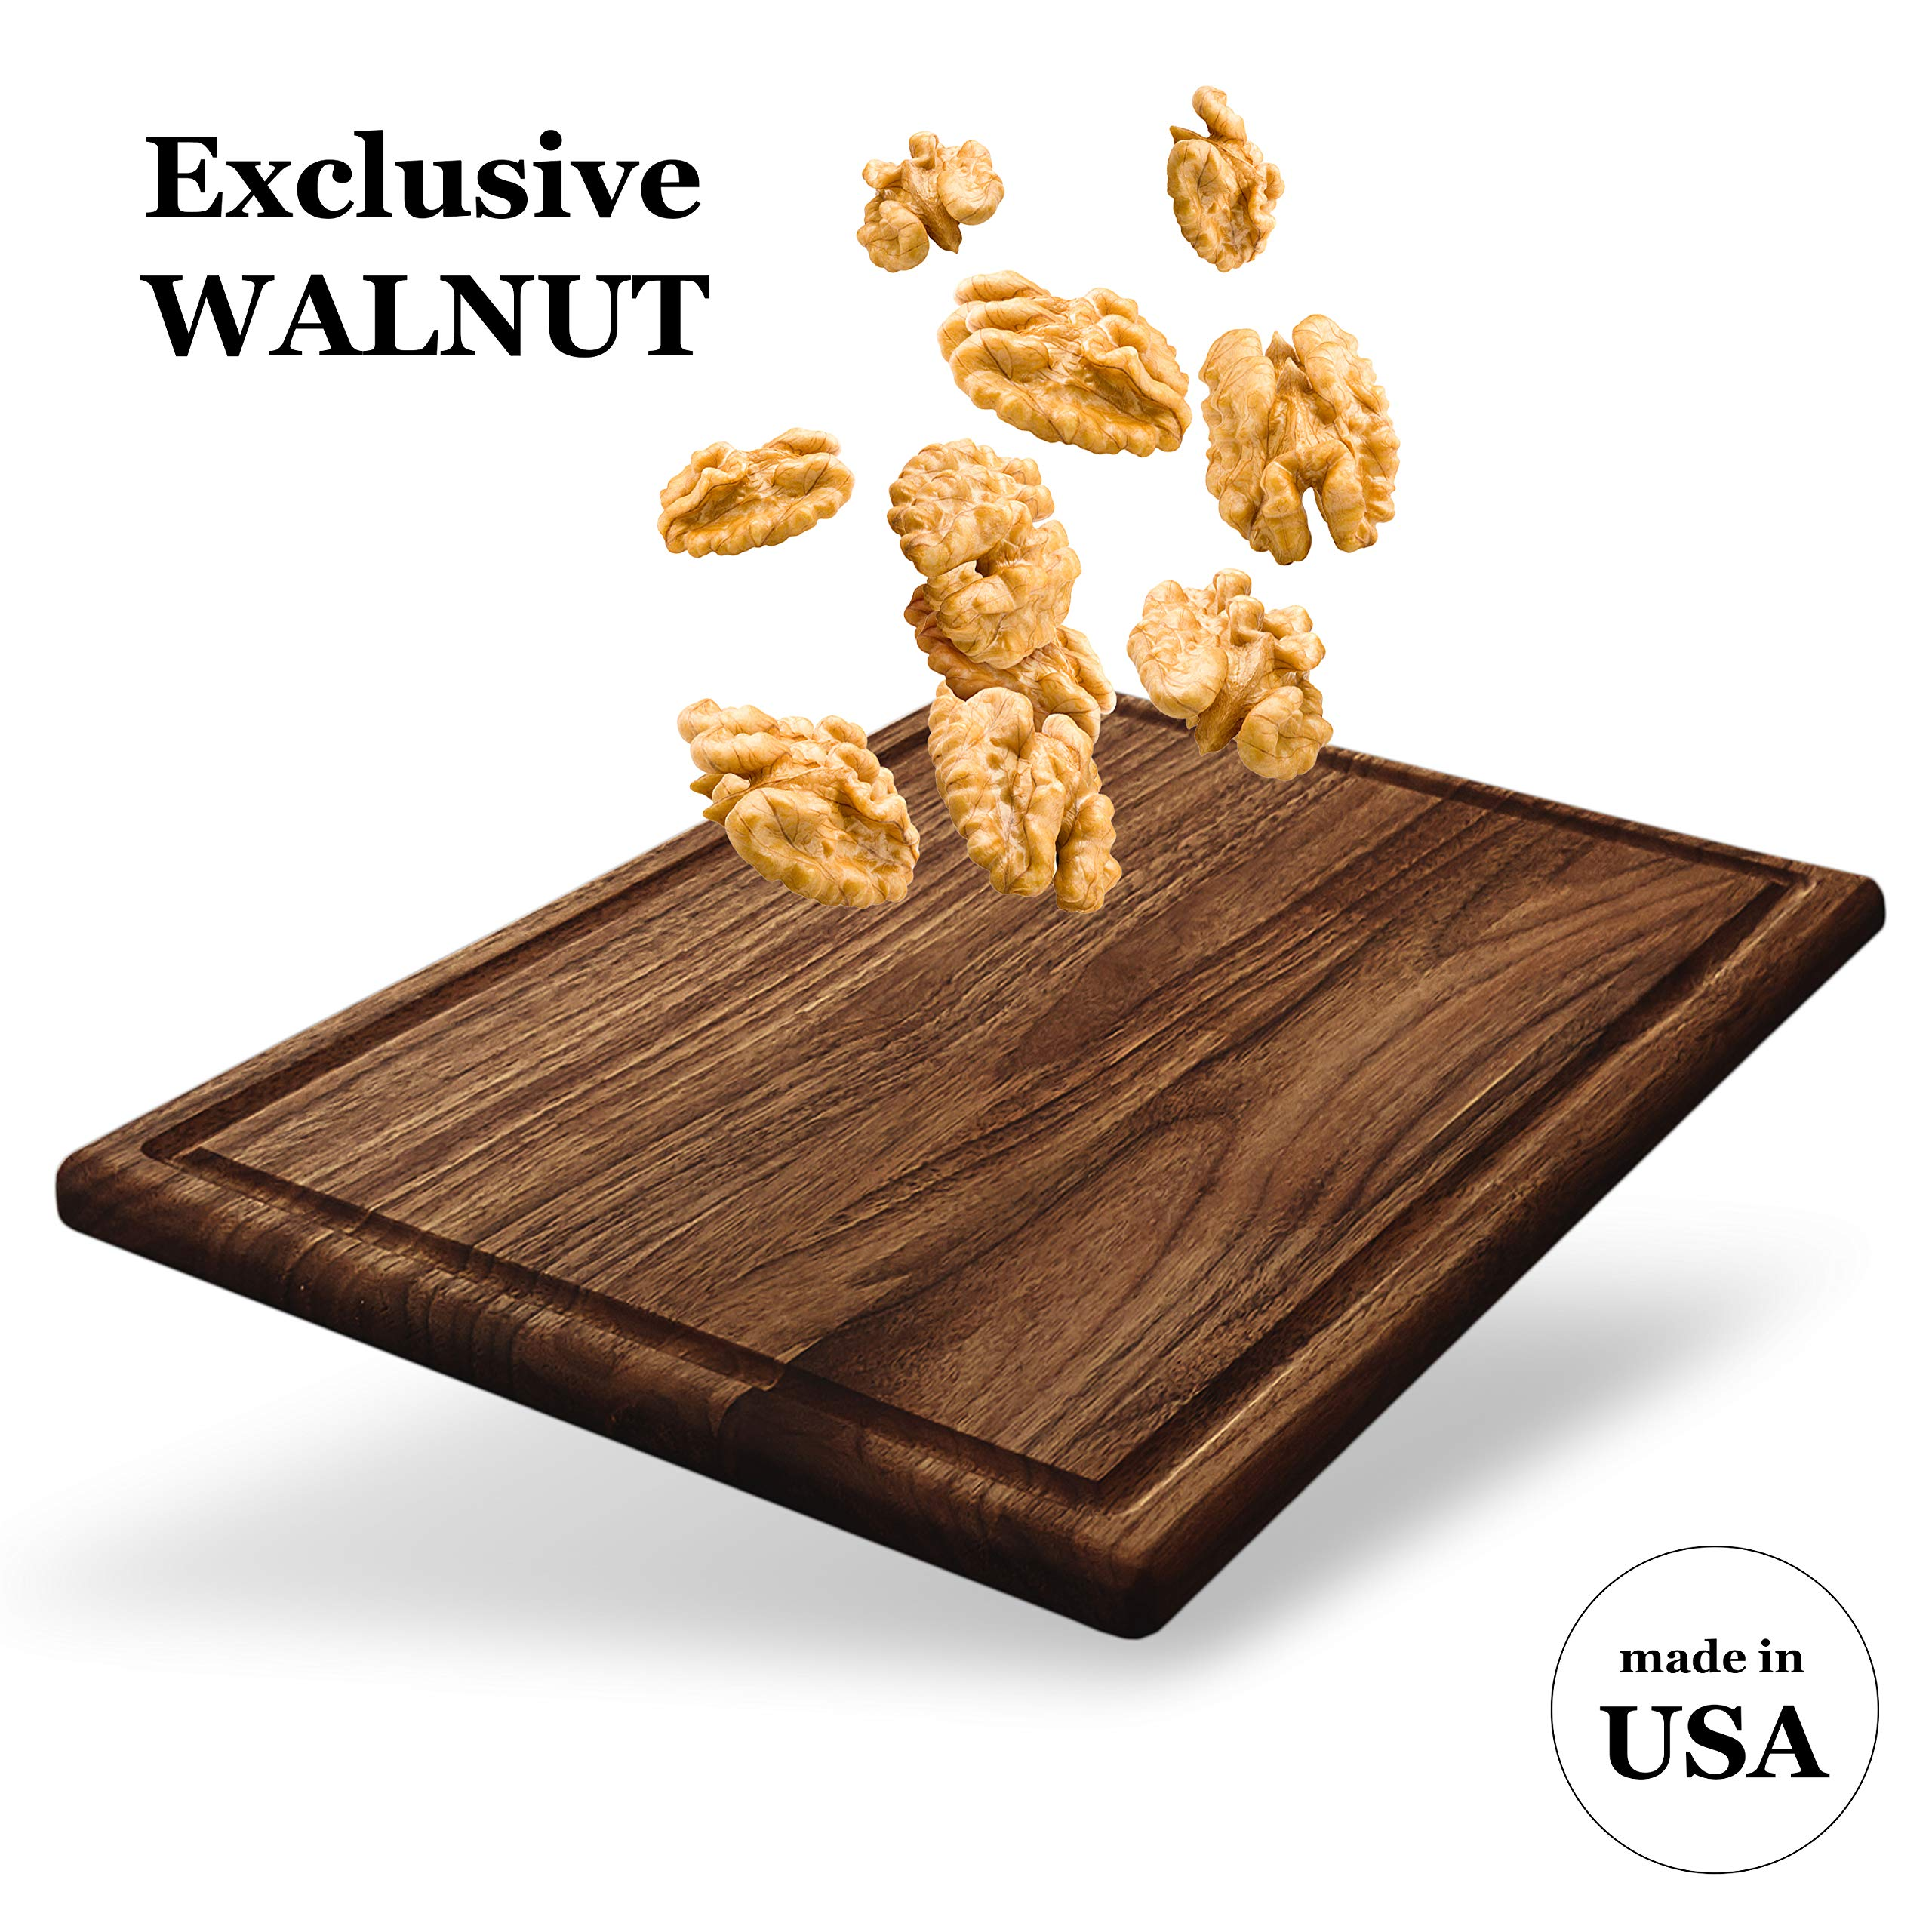 Walnut Premium Large Wood Cutting Board by V&B - 17x11 American Walnut Chopping and Carving Boards for Kitchen with Juice Drip Groove, E-book Gift